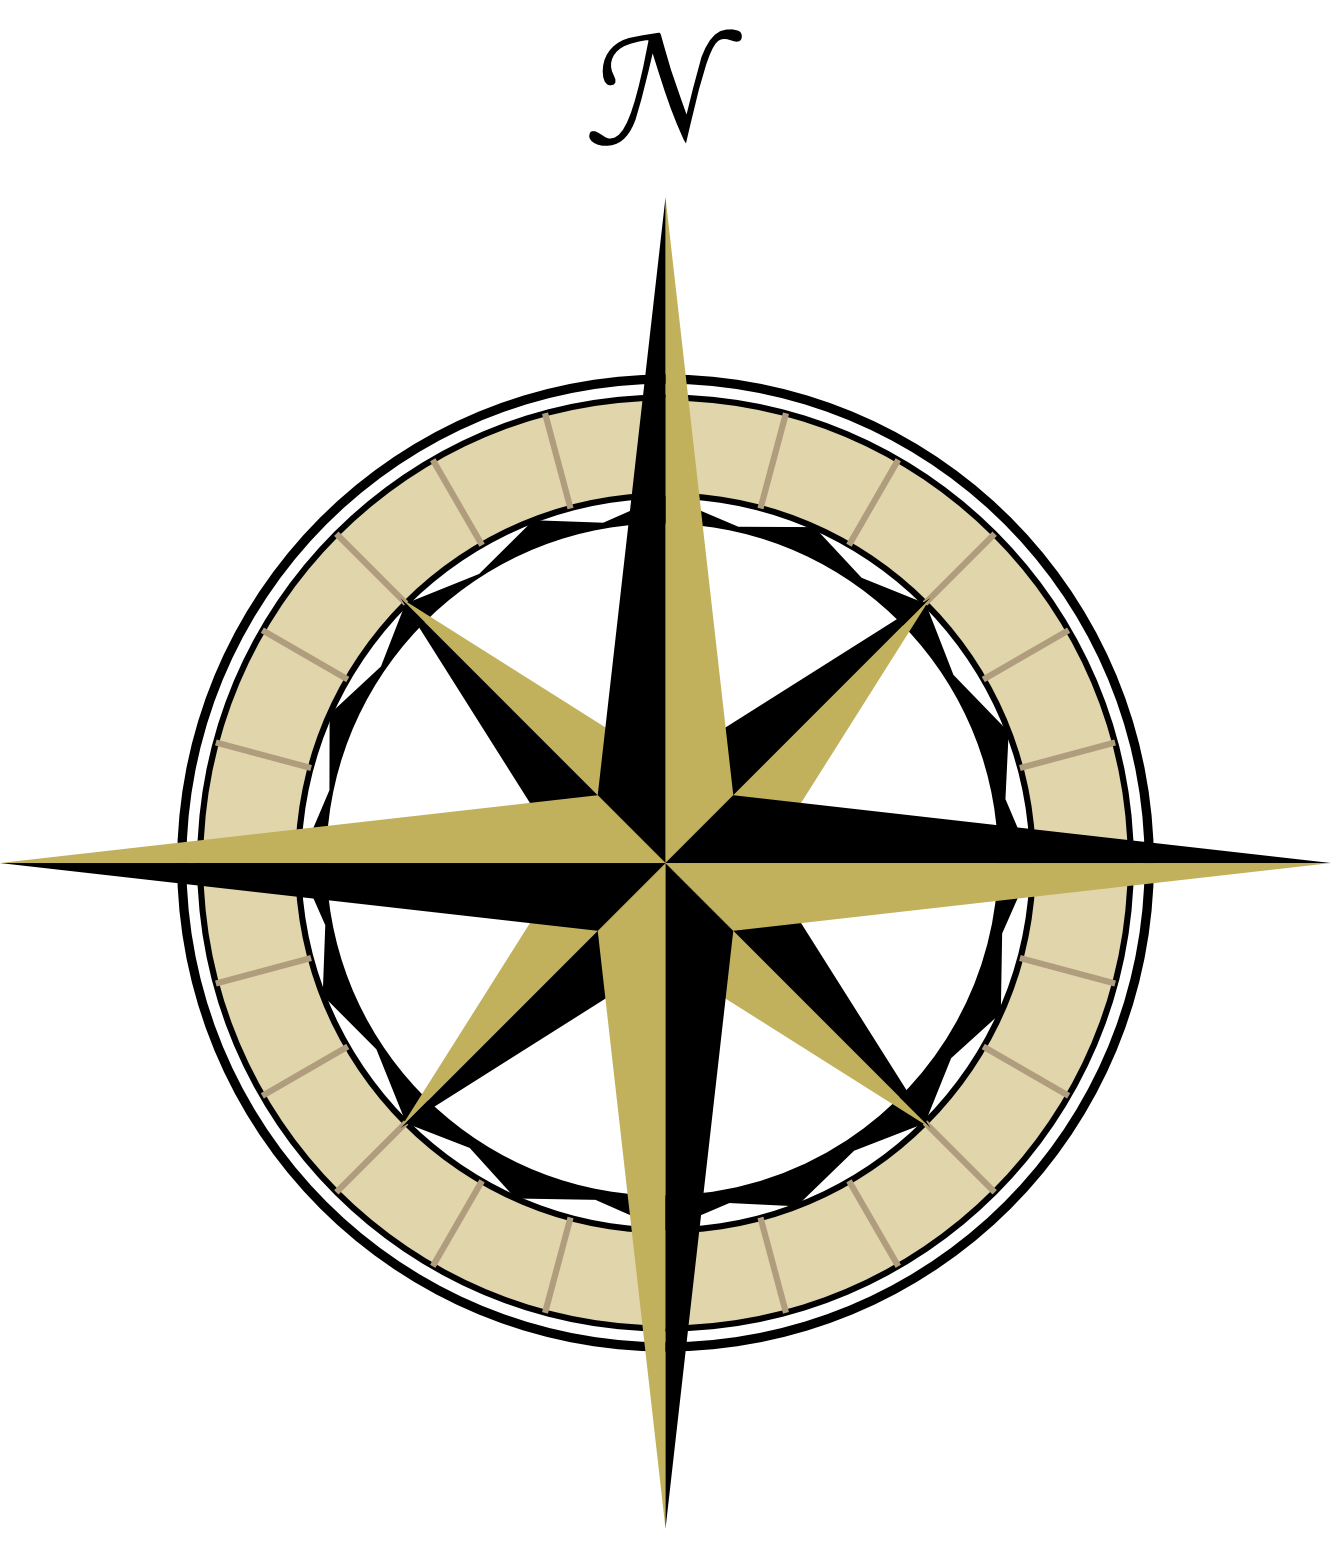 Vision clipart compass. Free fancy rose download